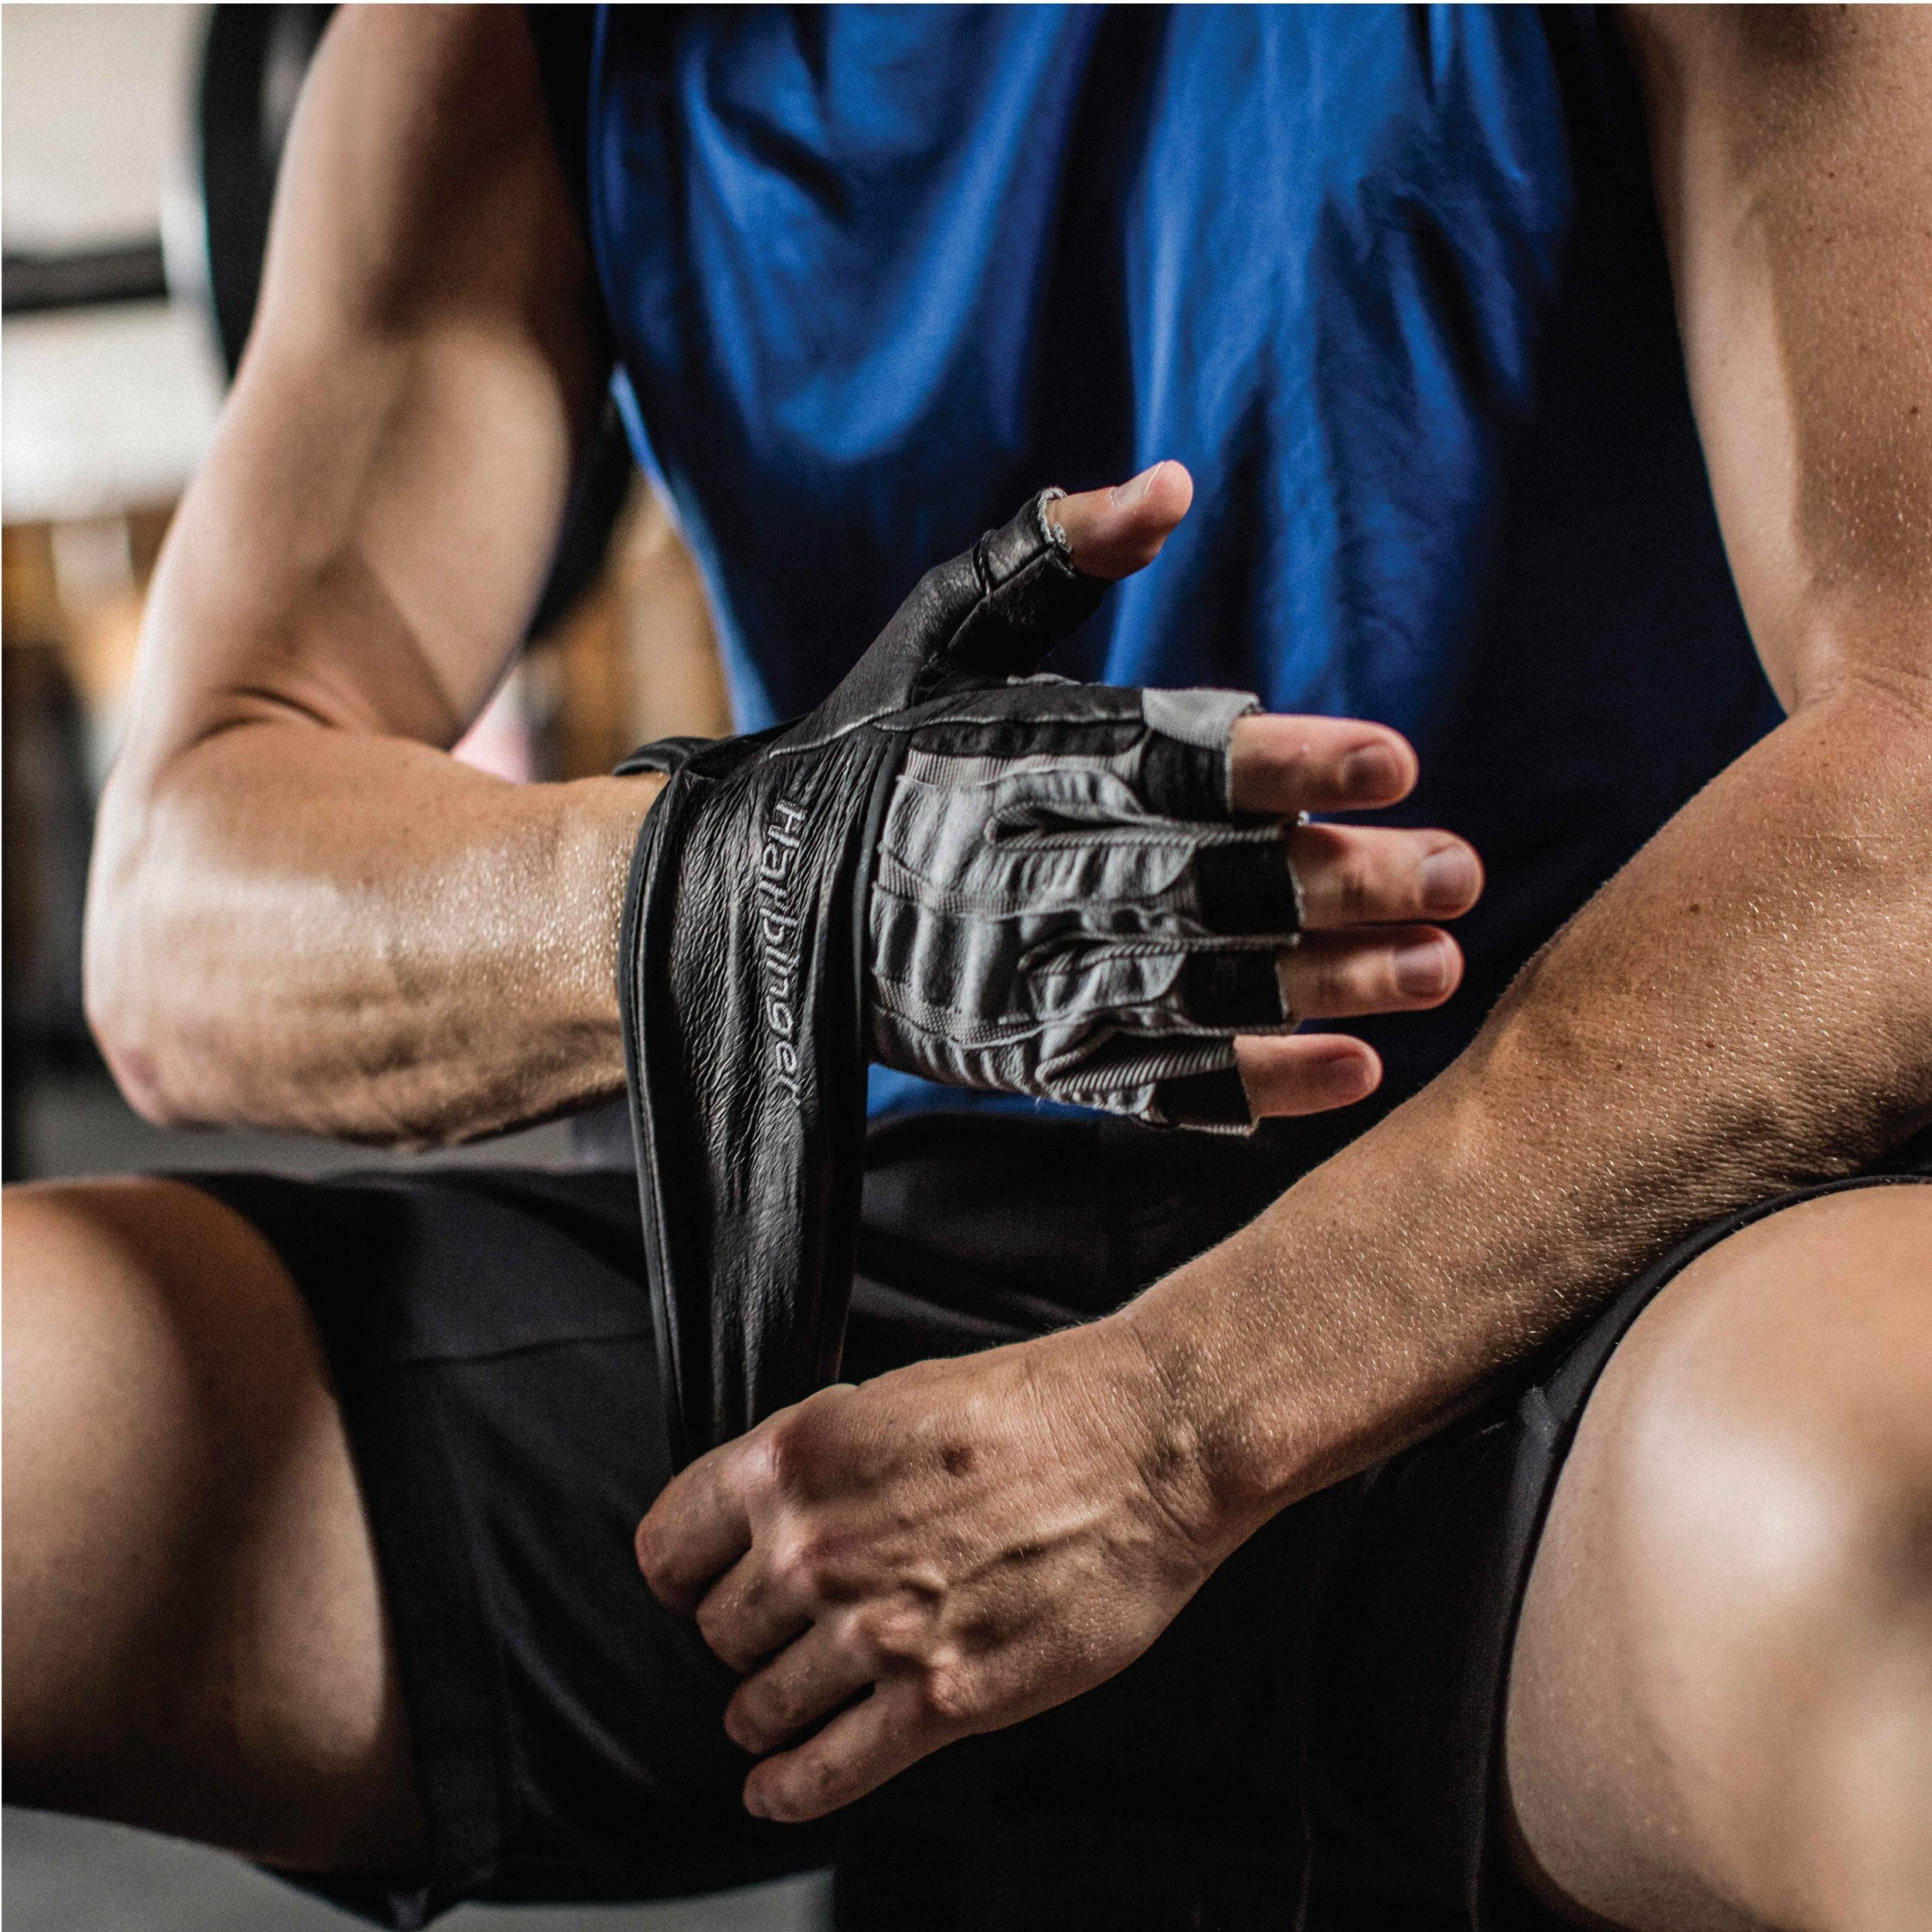 Harbinger Men's BioForm WristWrap Weightlifting Glove with Heat-Activated Cushioned Palm (Pair), Large - yrGear